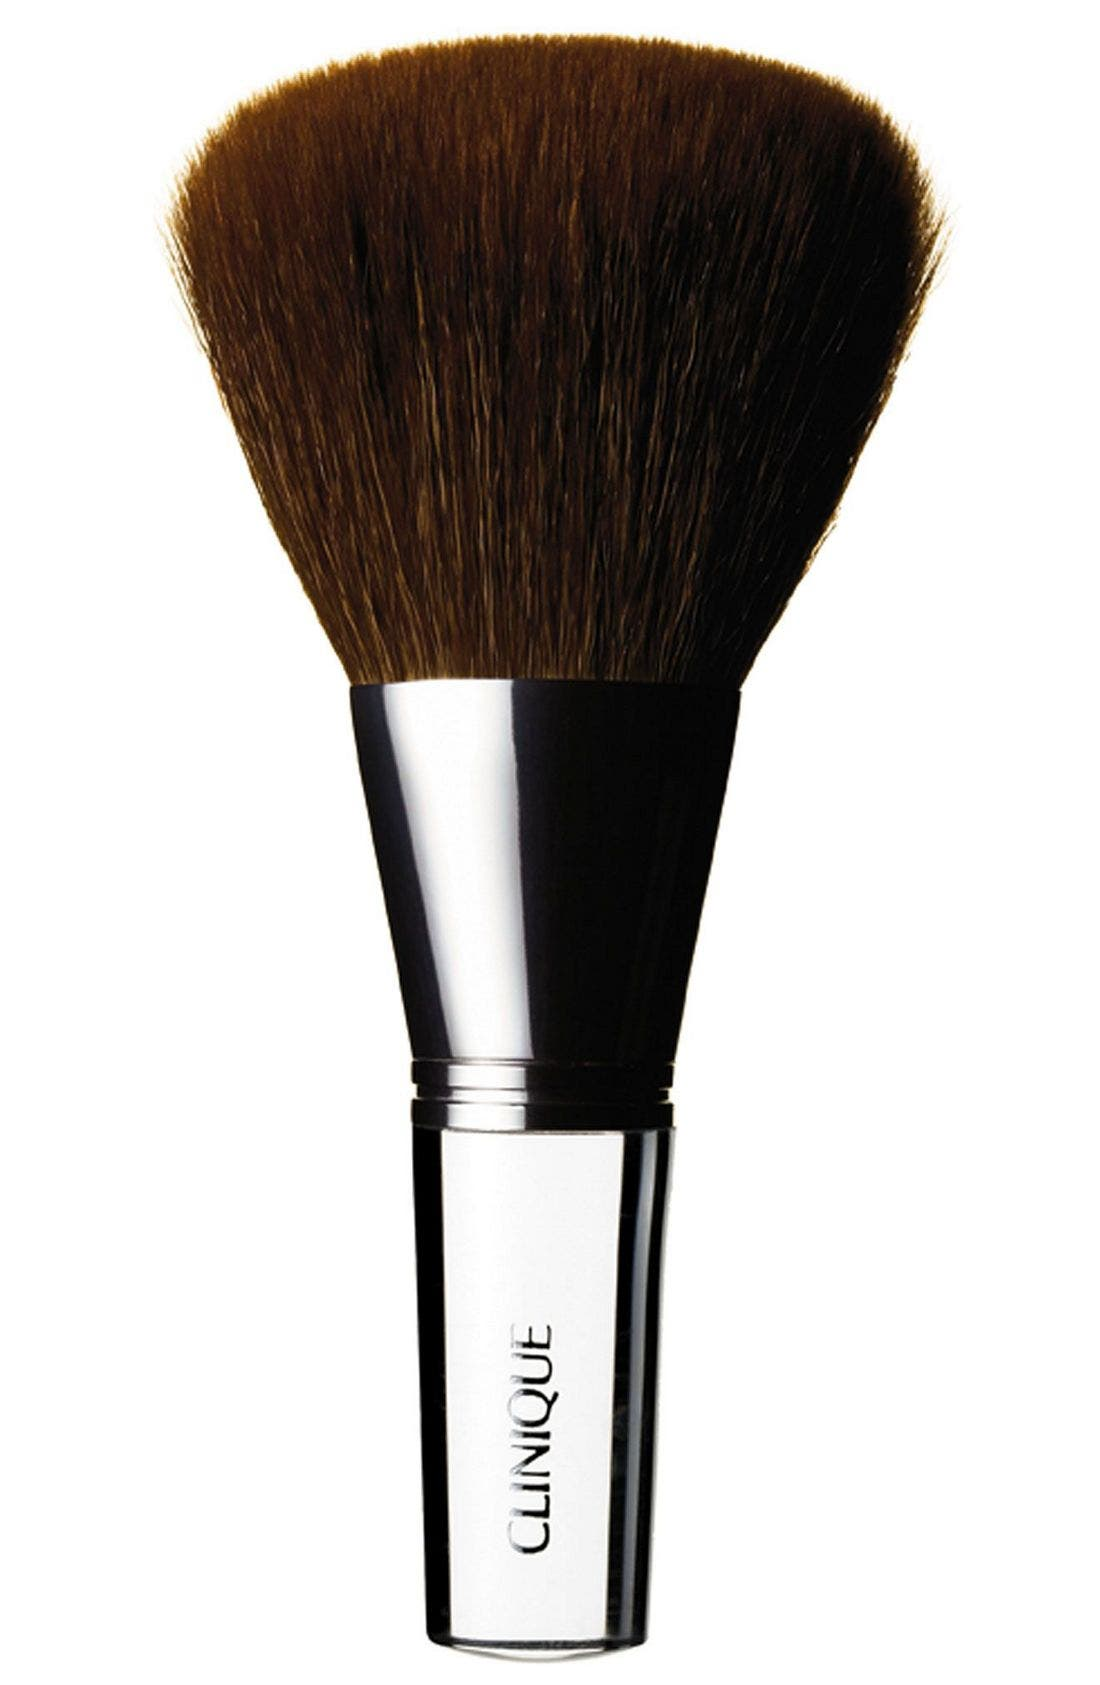 The perfect partner for powder, the Bronzer/Blender Brush is great for blending and highlighting. Unique antibacterial technology ensures a high level of hygiene. How to use: Dip or swirl into powder and tap off excess. Sweep lightly all over your face or wherever the sun might naturally bronze- Allergy tested. Style Name: Clinique Bronzer/blender Brush. Style Number: 162014. Available in stores.